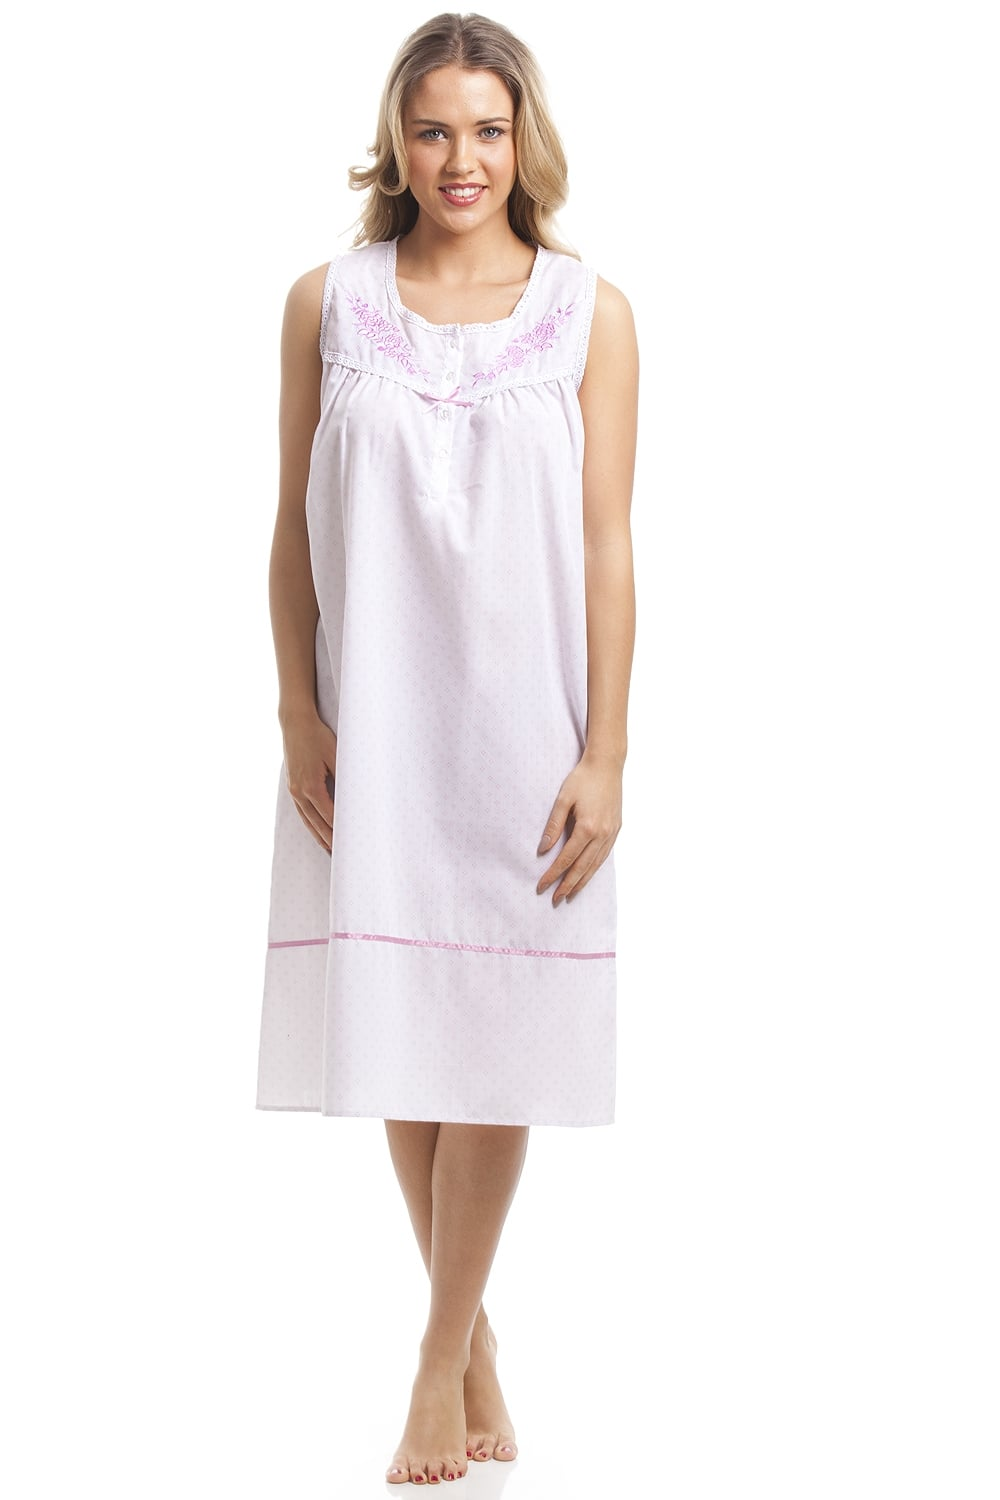 Camille Classic Pink Dot Sleeveless White Nightdress e69cccd59